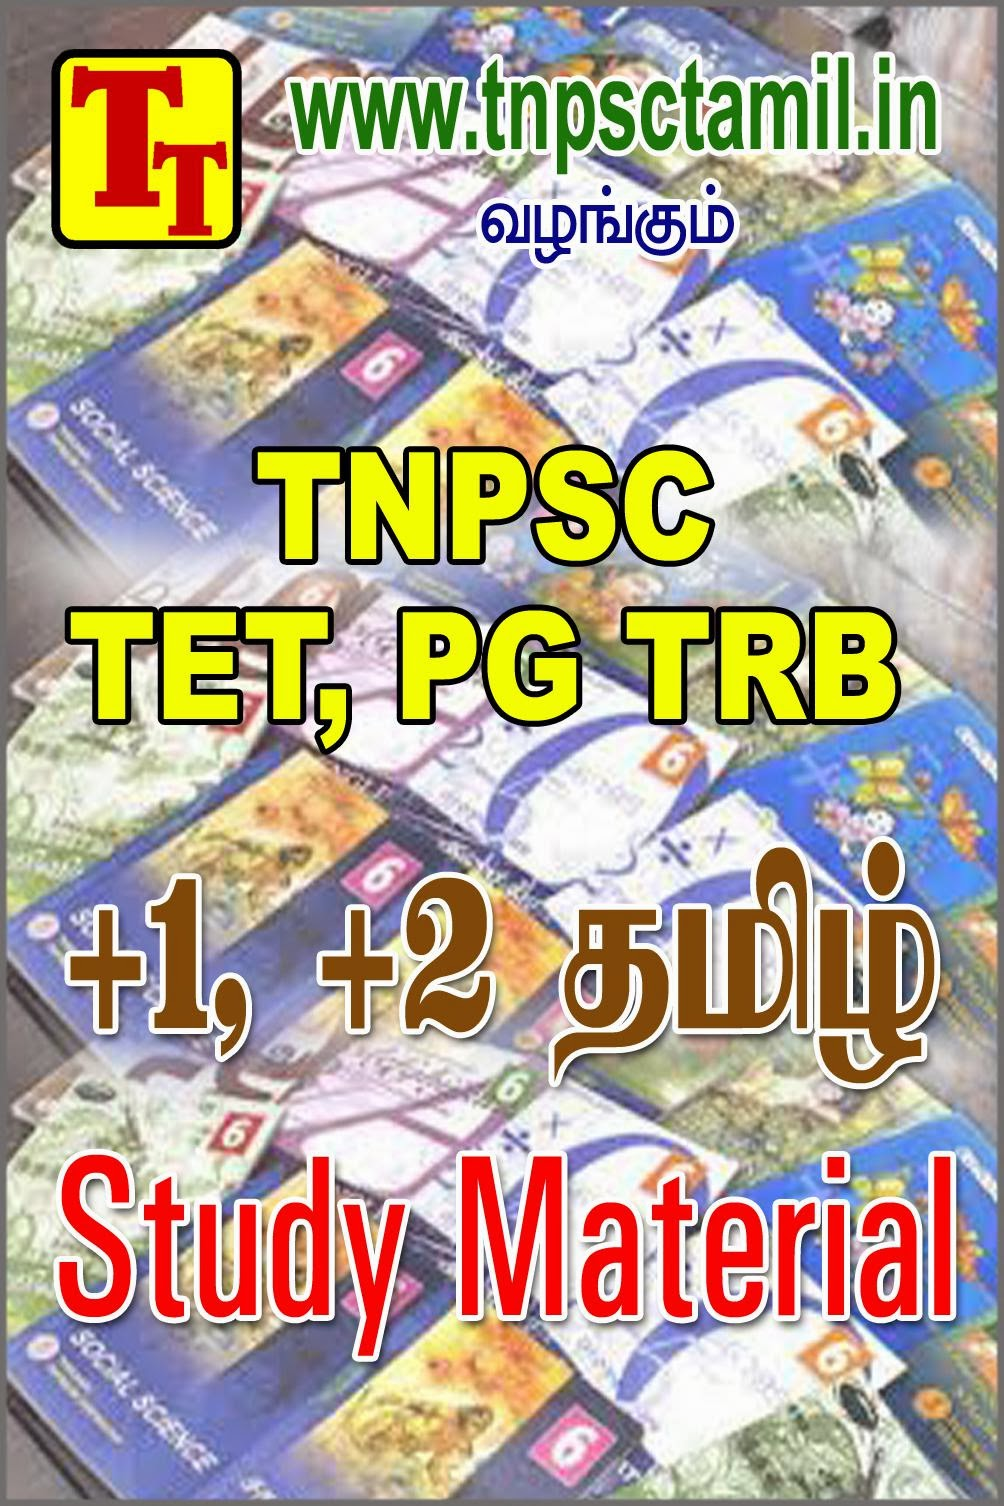 IGNOU M.Com Study Material free download pdf - Search Find